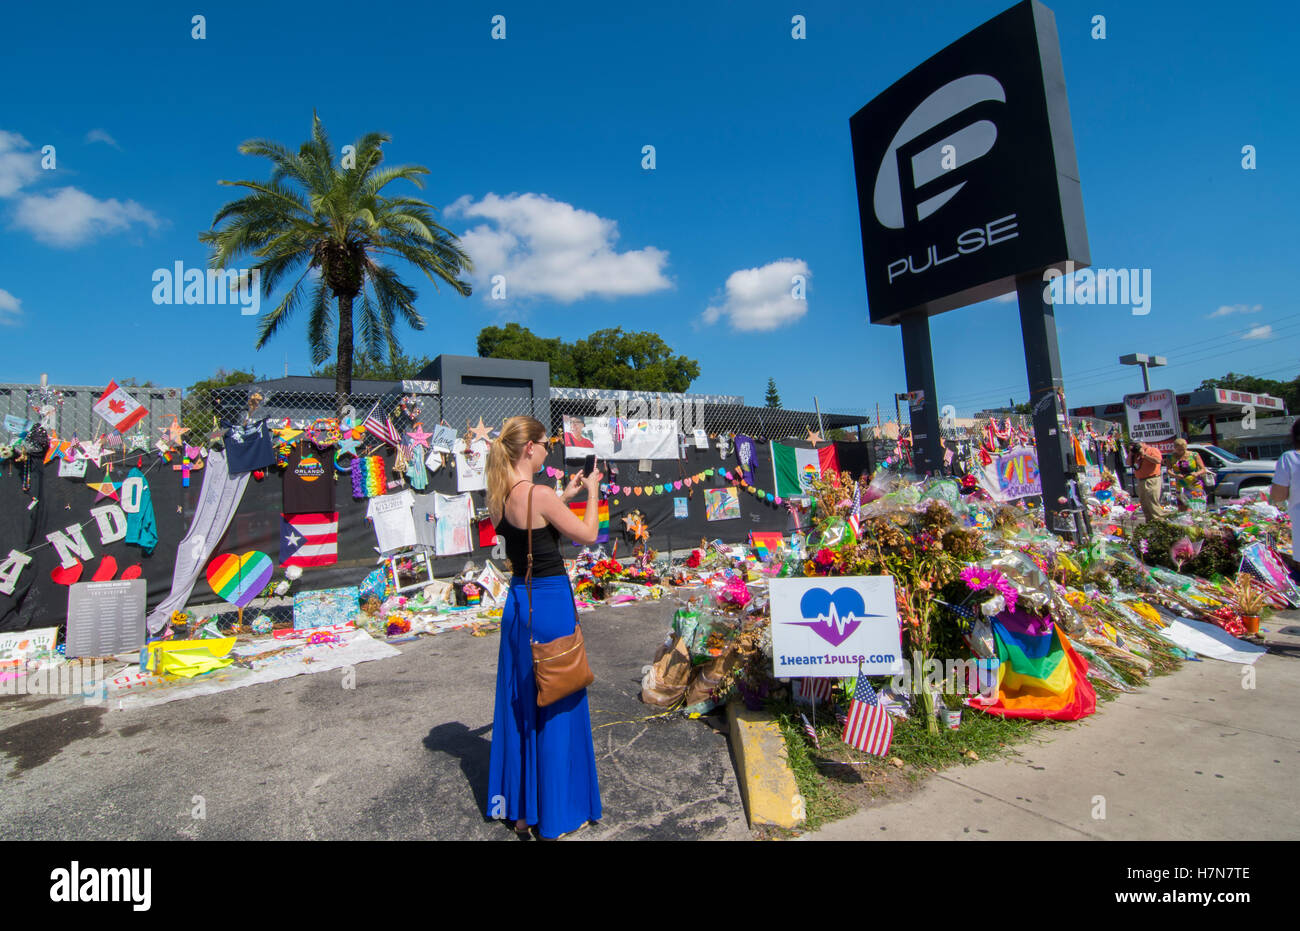 Orlando Florida Pulse night club tragedy shooting memorial at gay bar by terrorist on June 12, 2016, woman taking - Stock Image